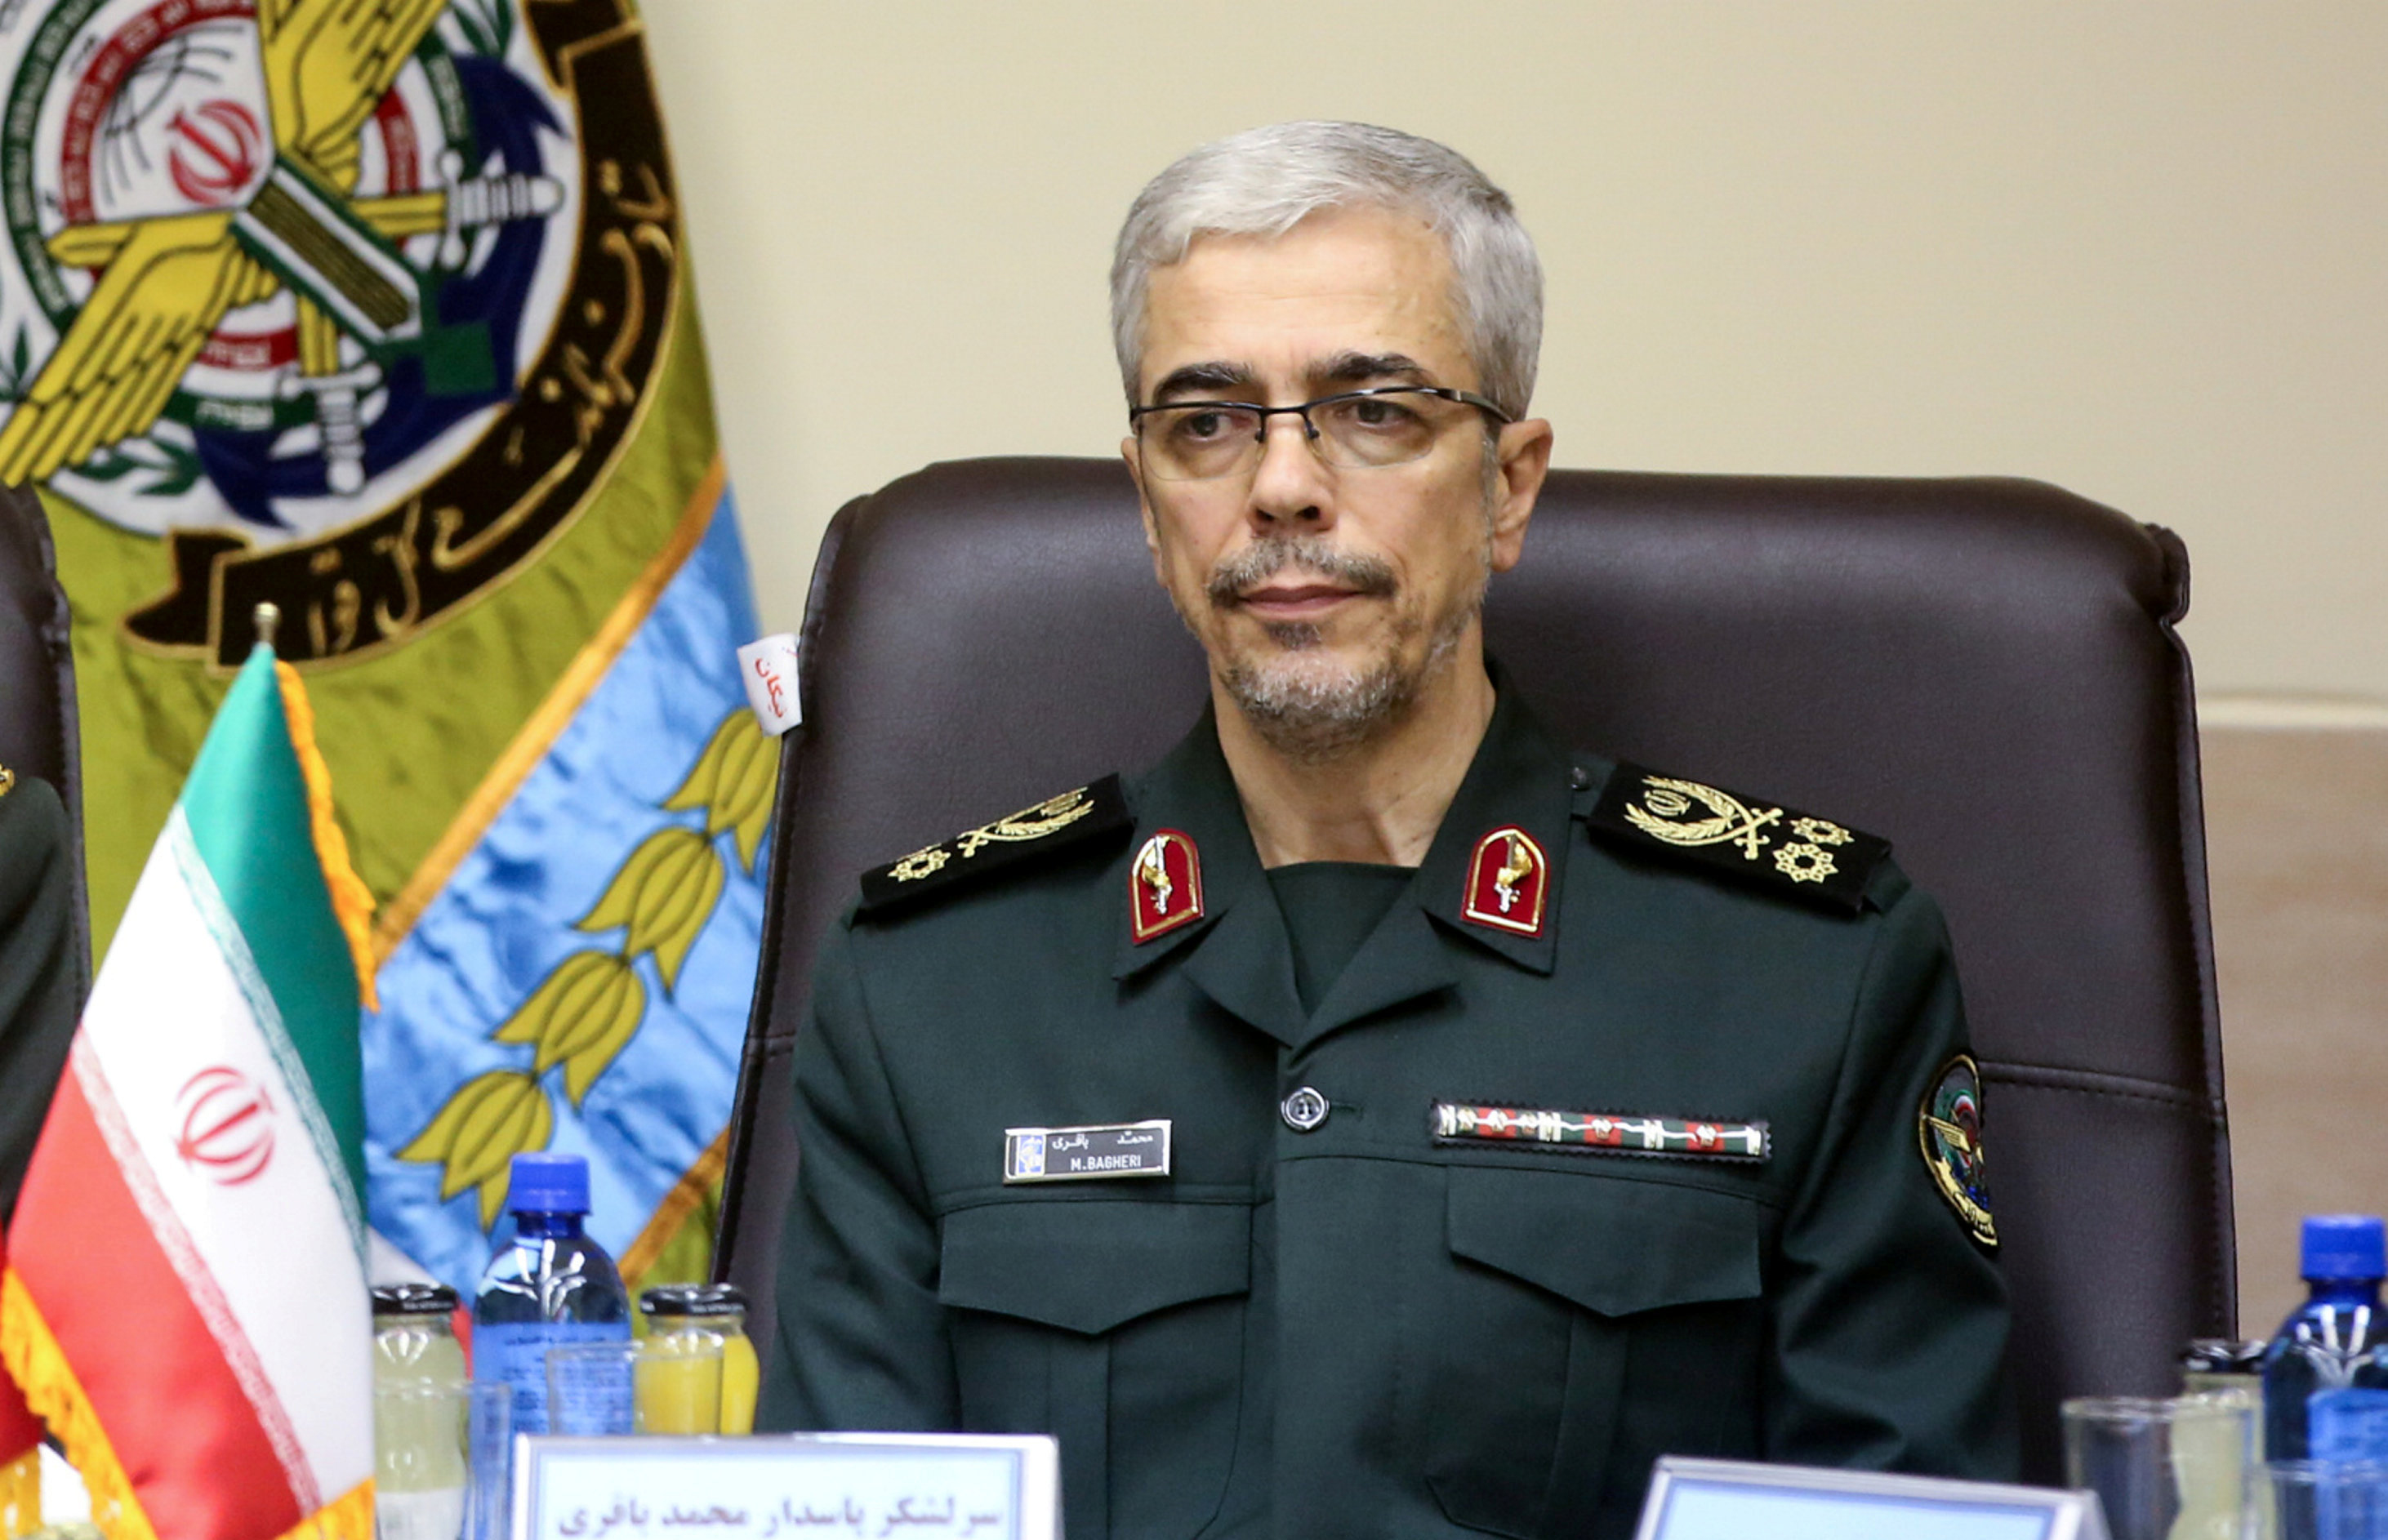 Chefe do Estado-Maior do Irã, major-general Mohammad Baqeri